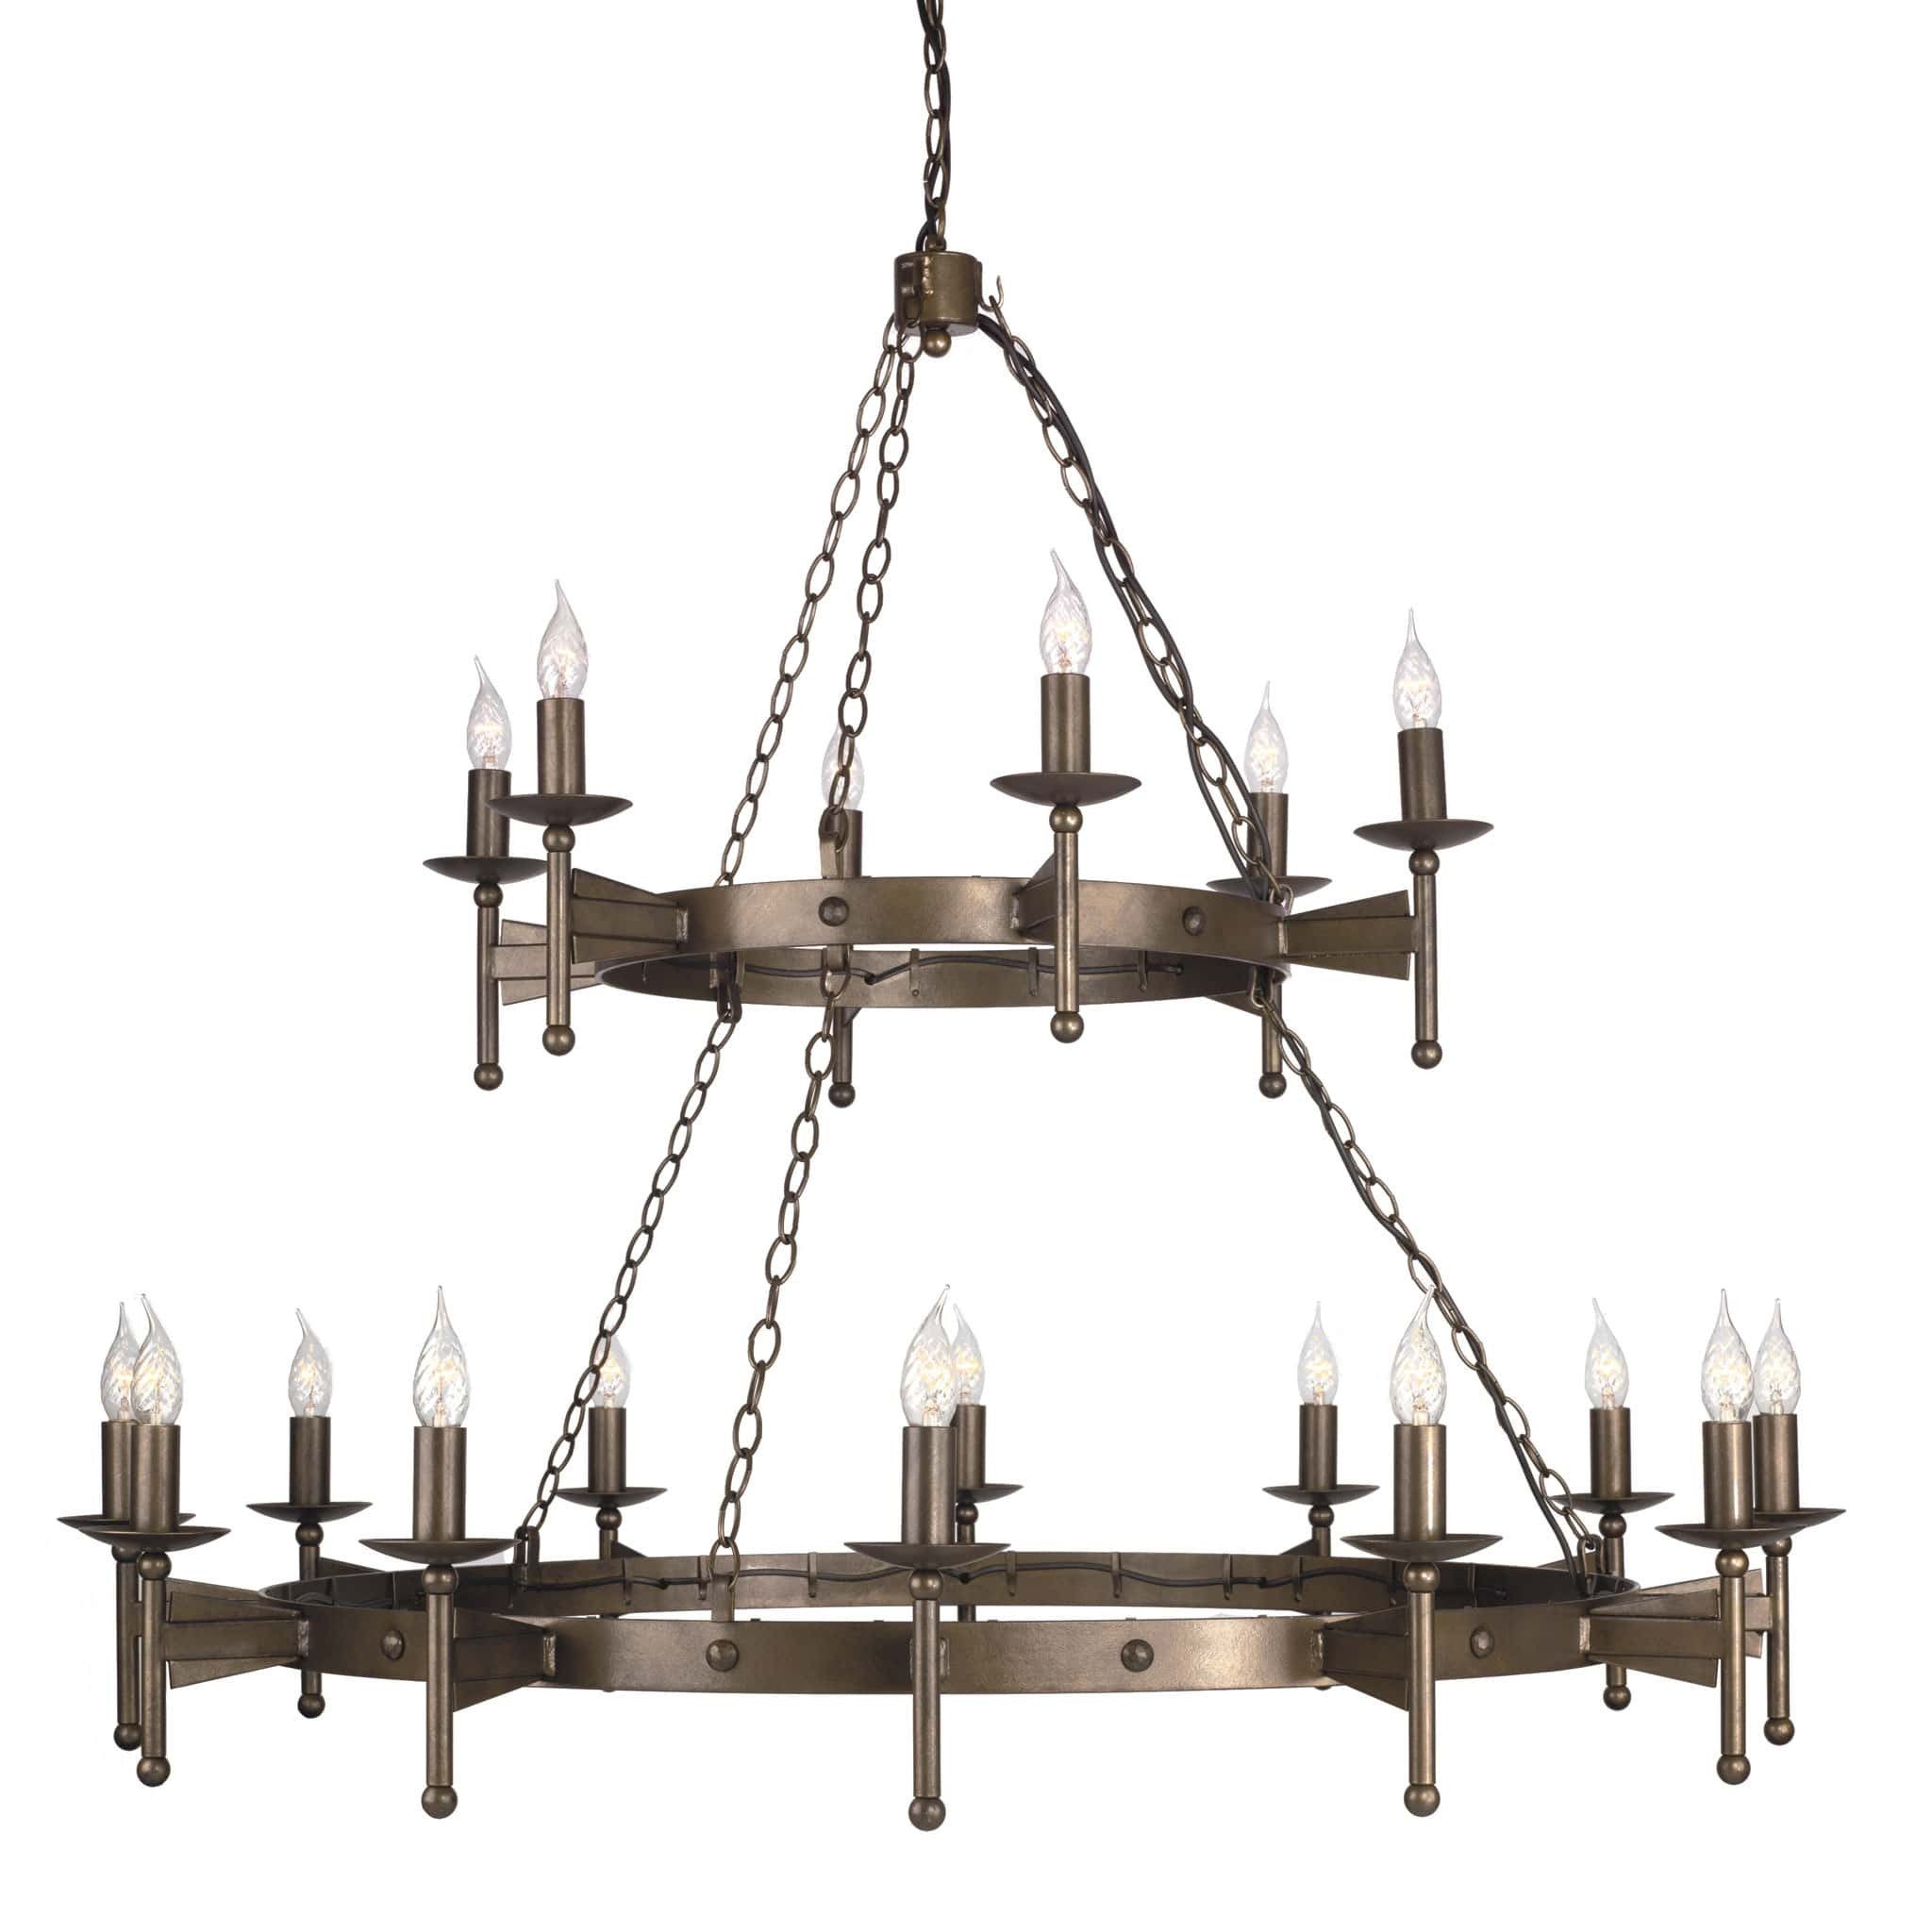 fashioned free old liam barn product gray garden shipping today rubbed overstock light the bronze home chandelier oil